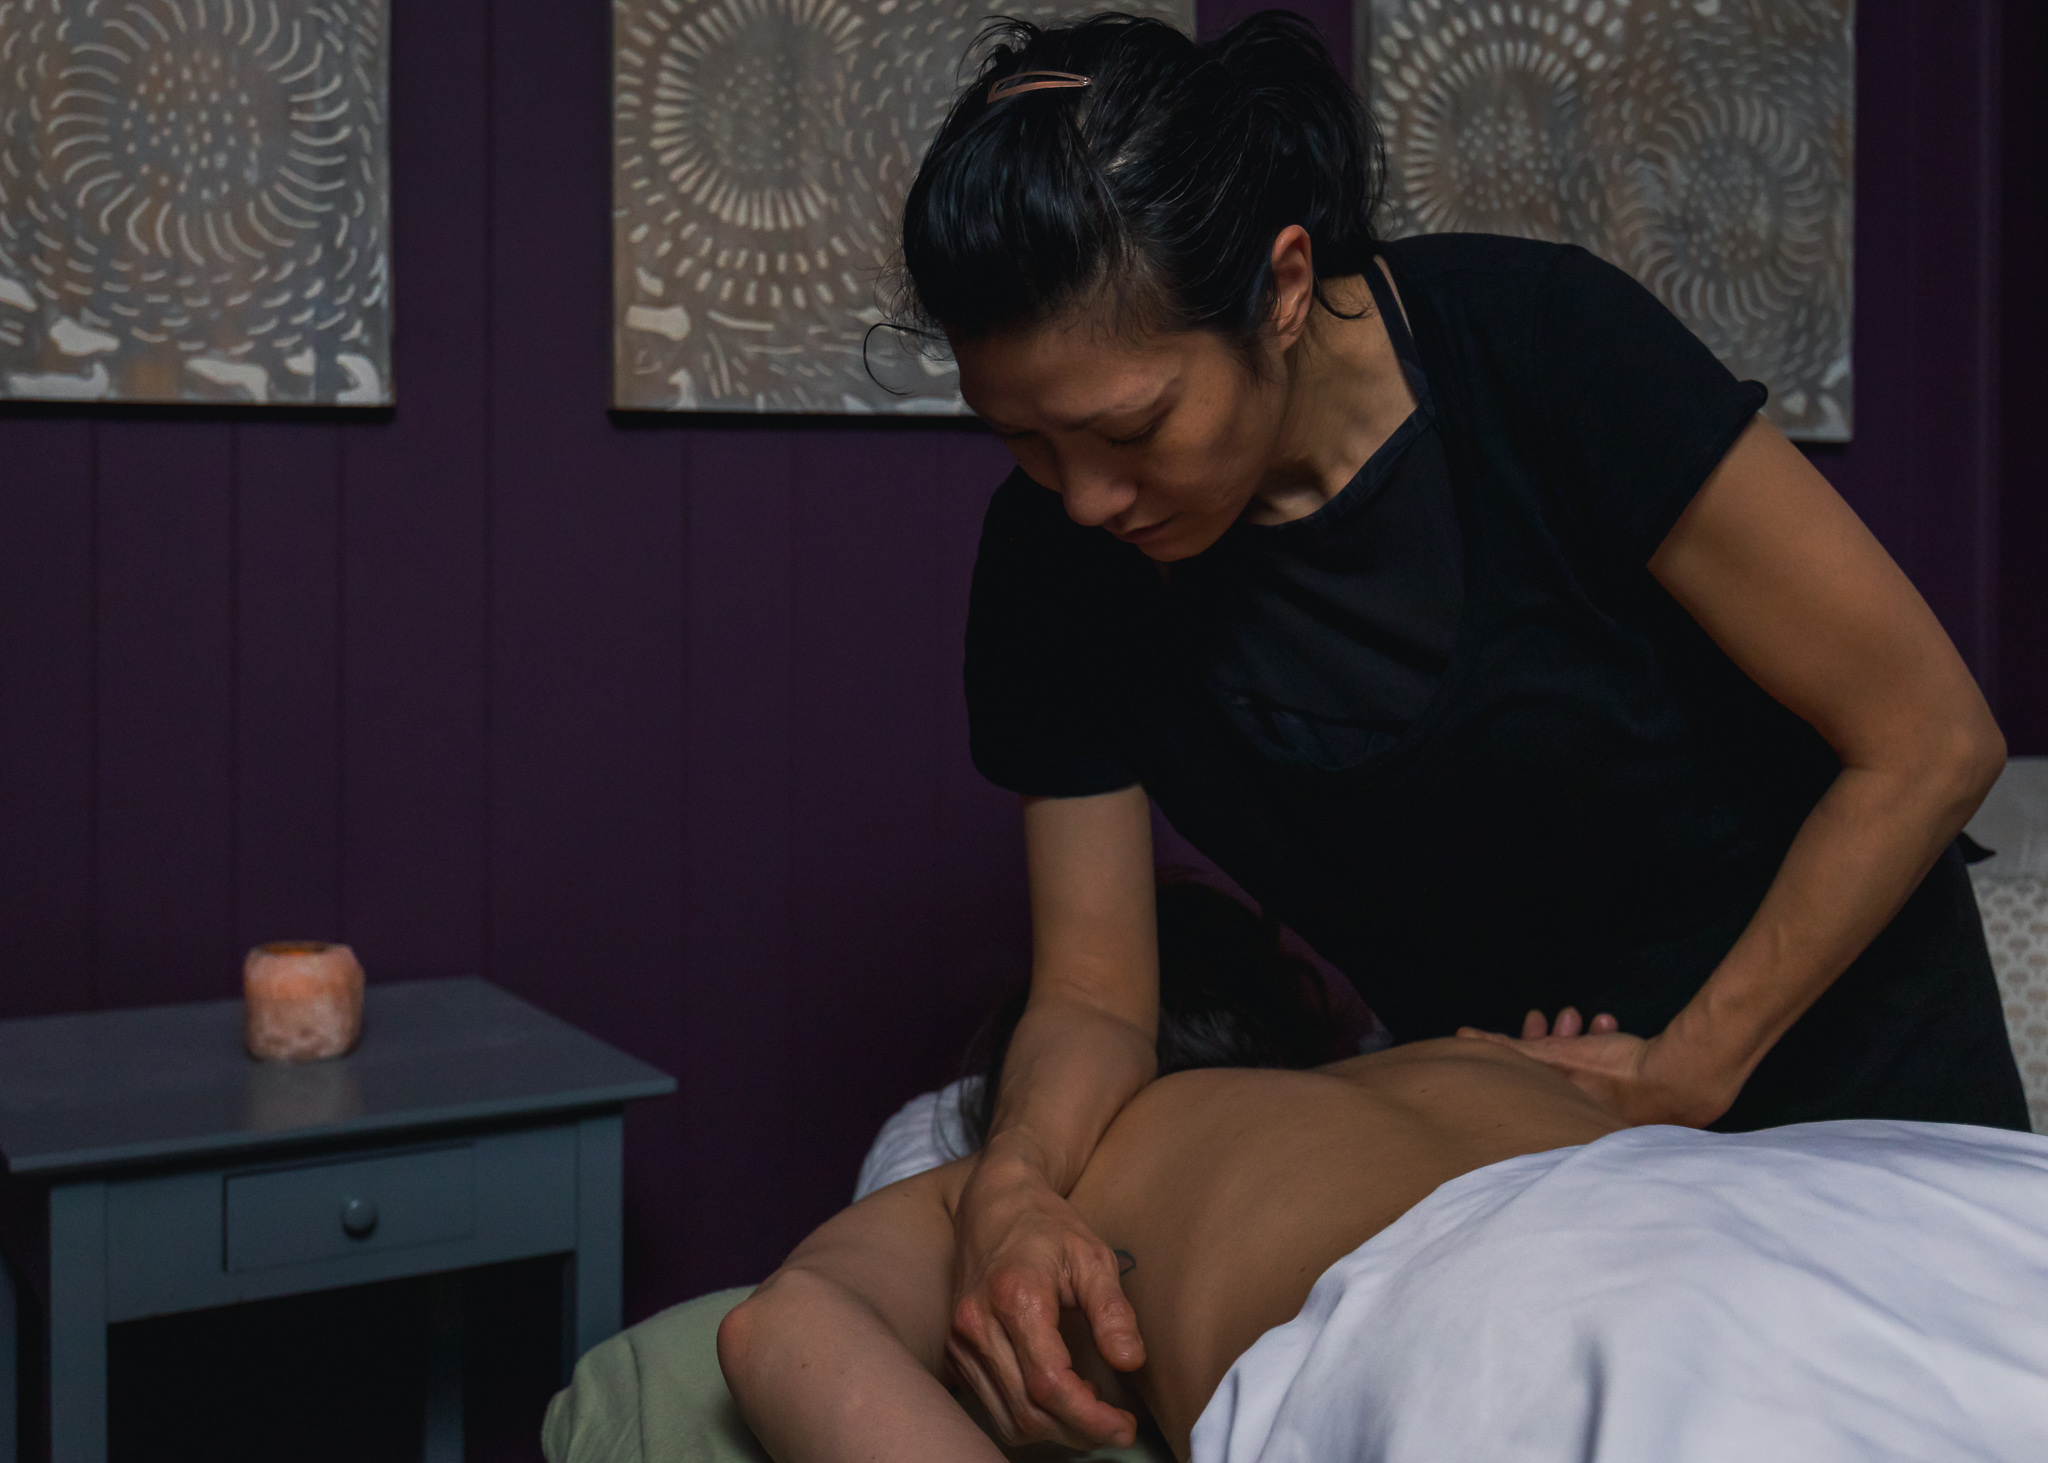 Massage Therapist Working on a Client